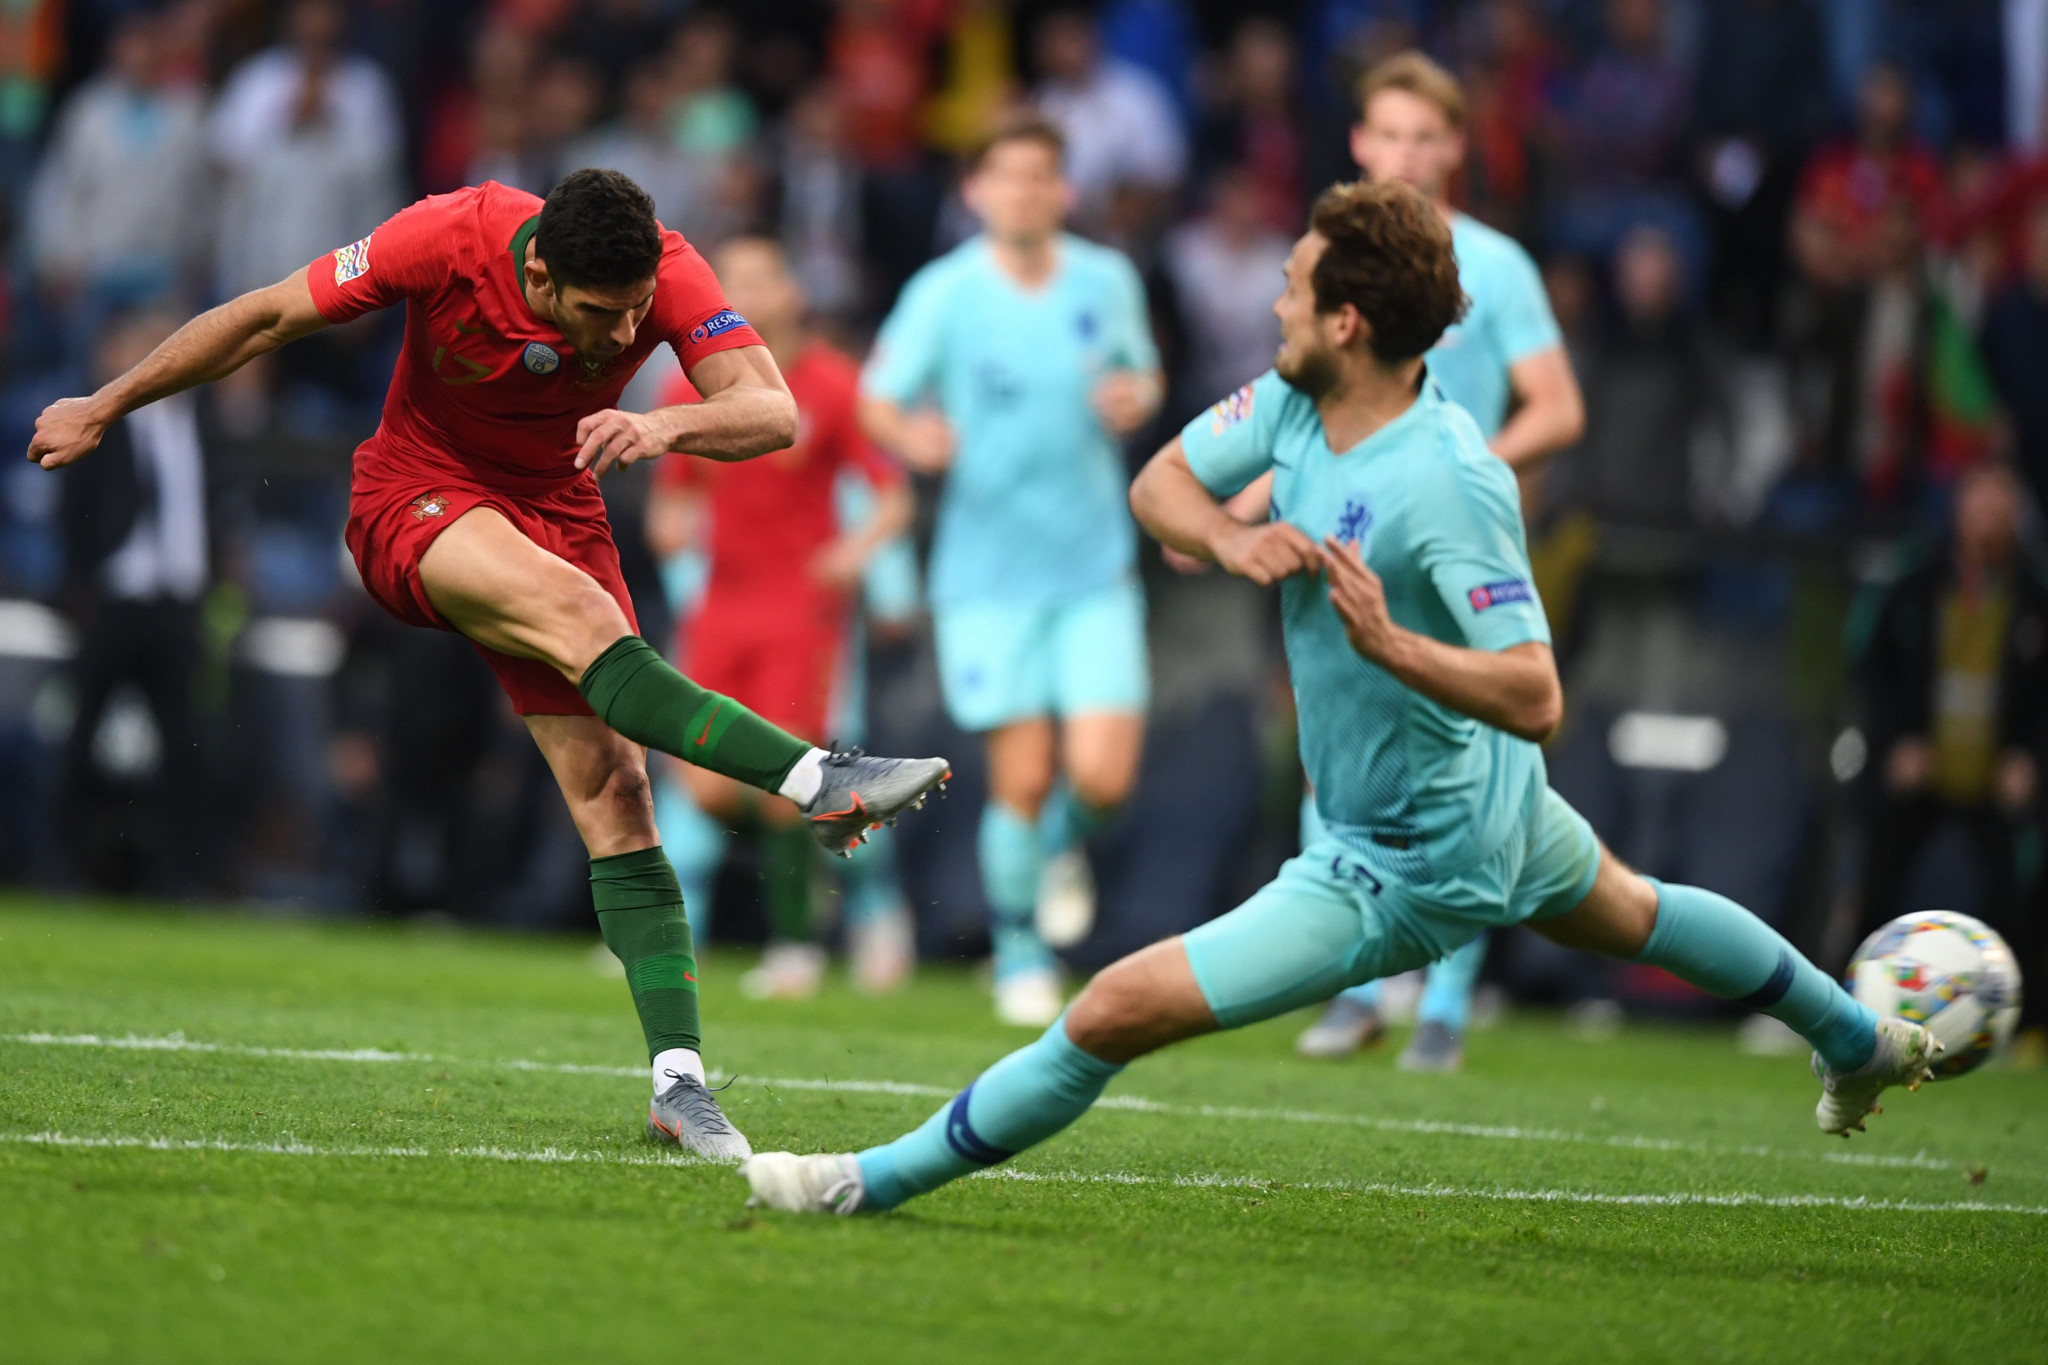 September S Uefa Nations League Games To Be Played Behind Closed Doors